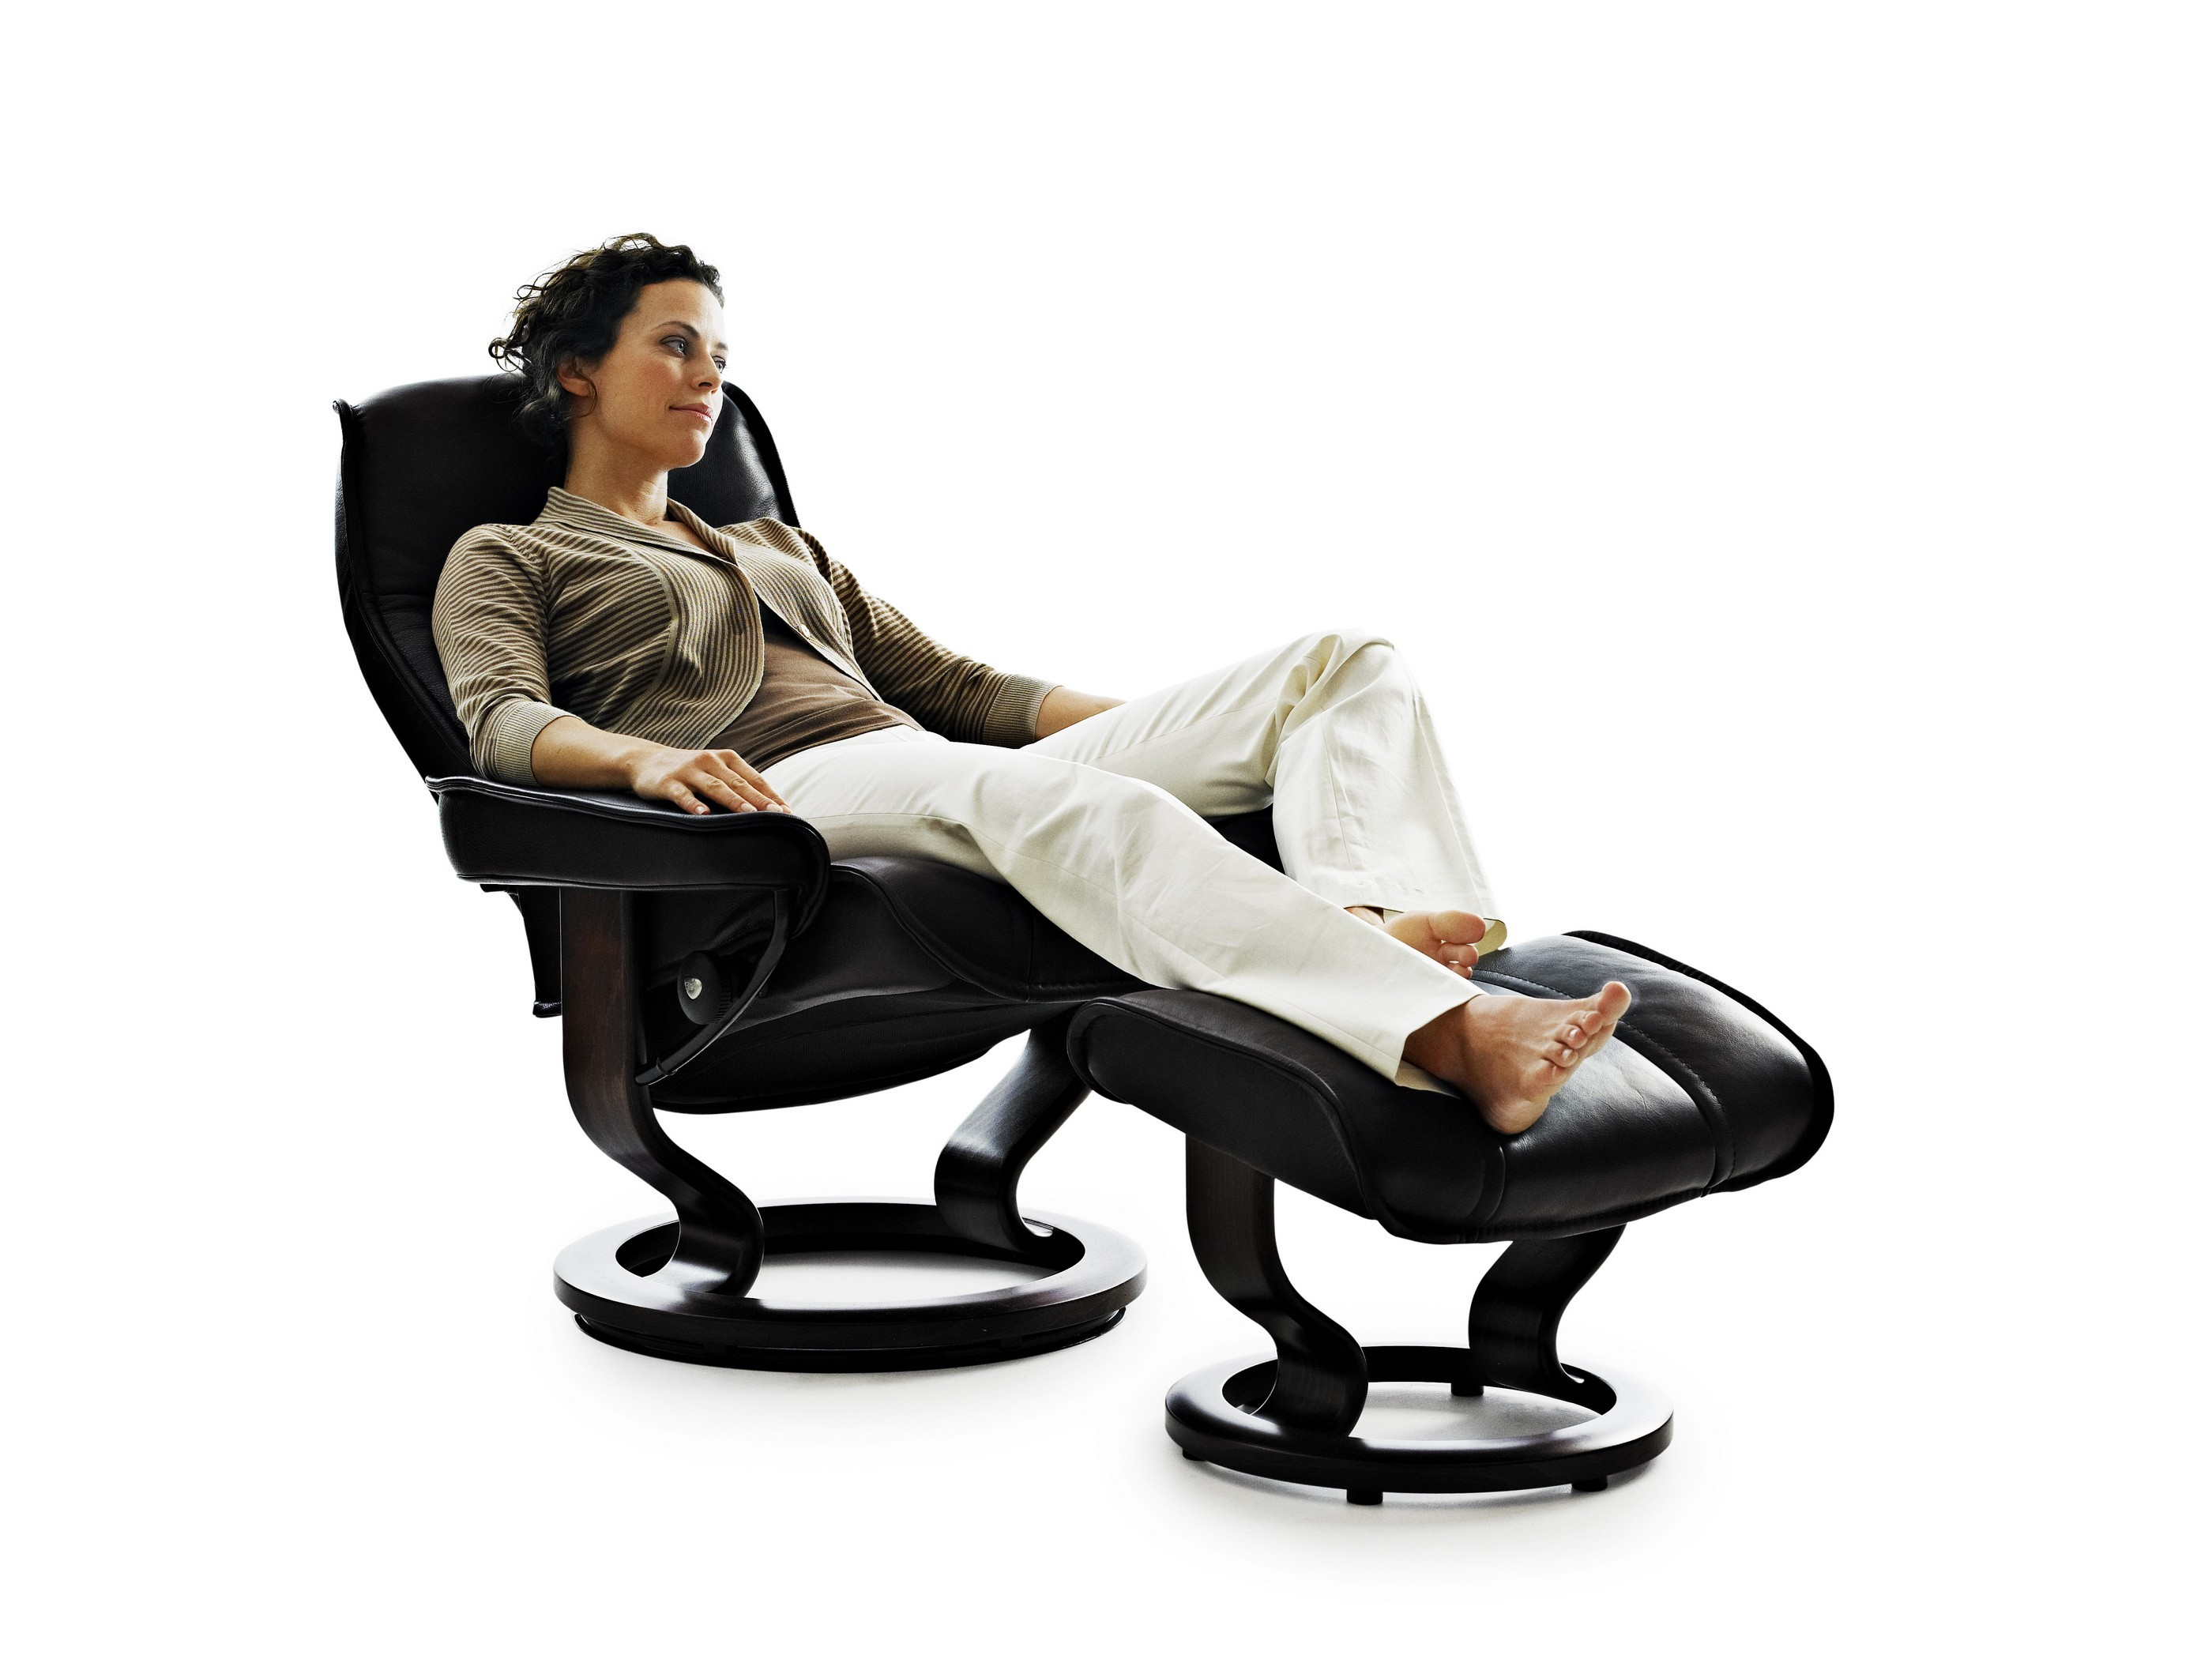 Stressless Chairs Reviews Ekornes Stressless Senator / Governor Recliner with Matching Ottoman